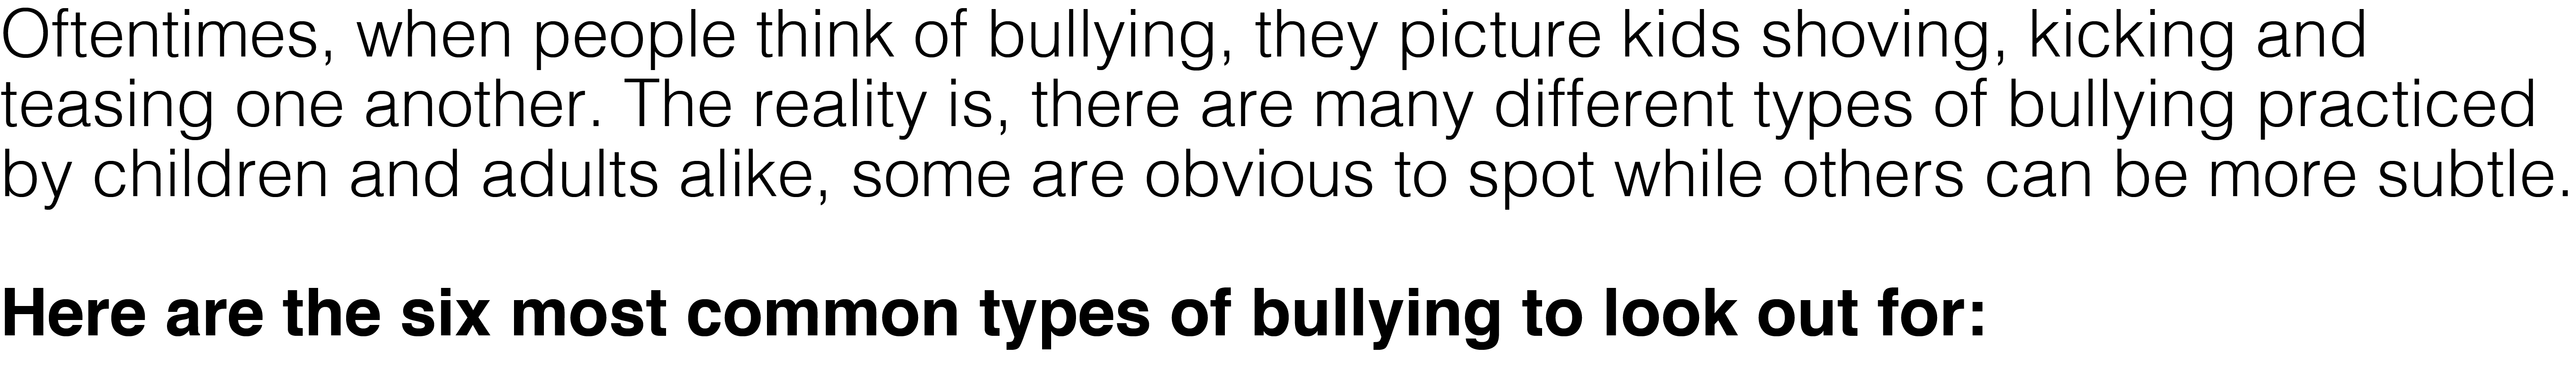 6 types bullying-text_paragraph_2-12